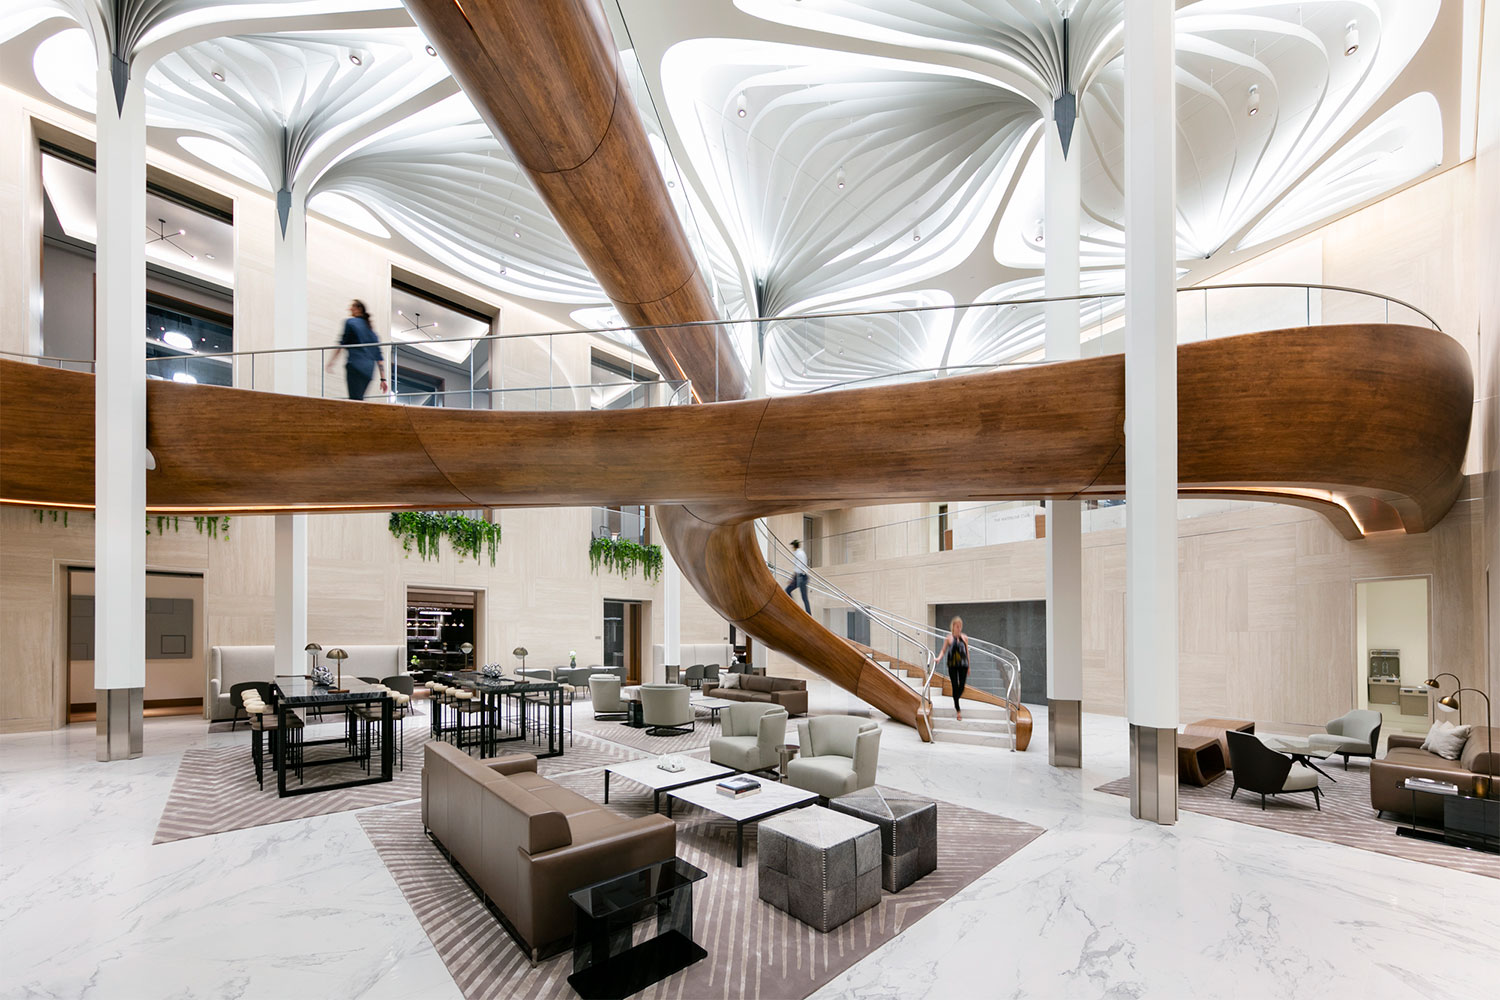 A photograph of the interior of the Waterline Club featuring a dramatic sculptural ceiling